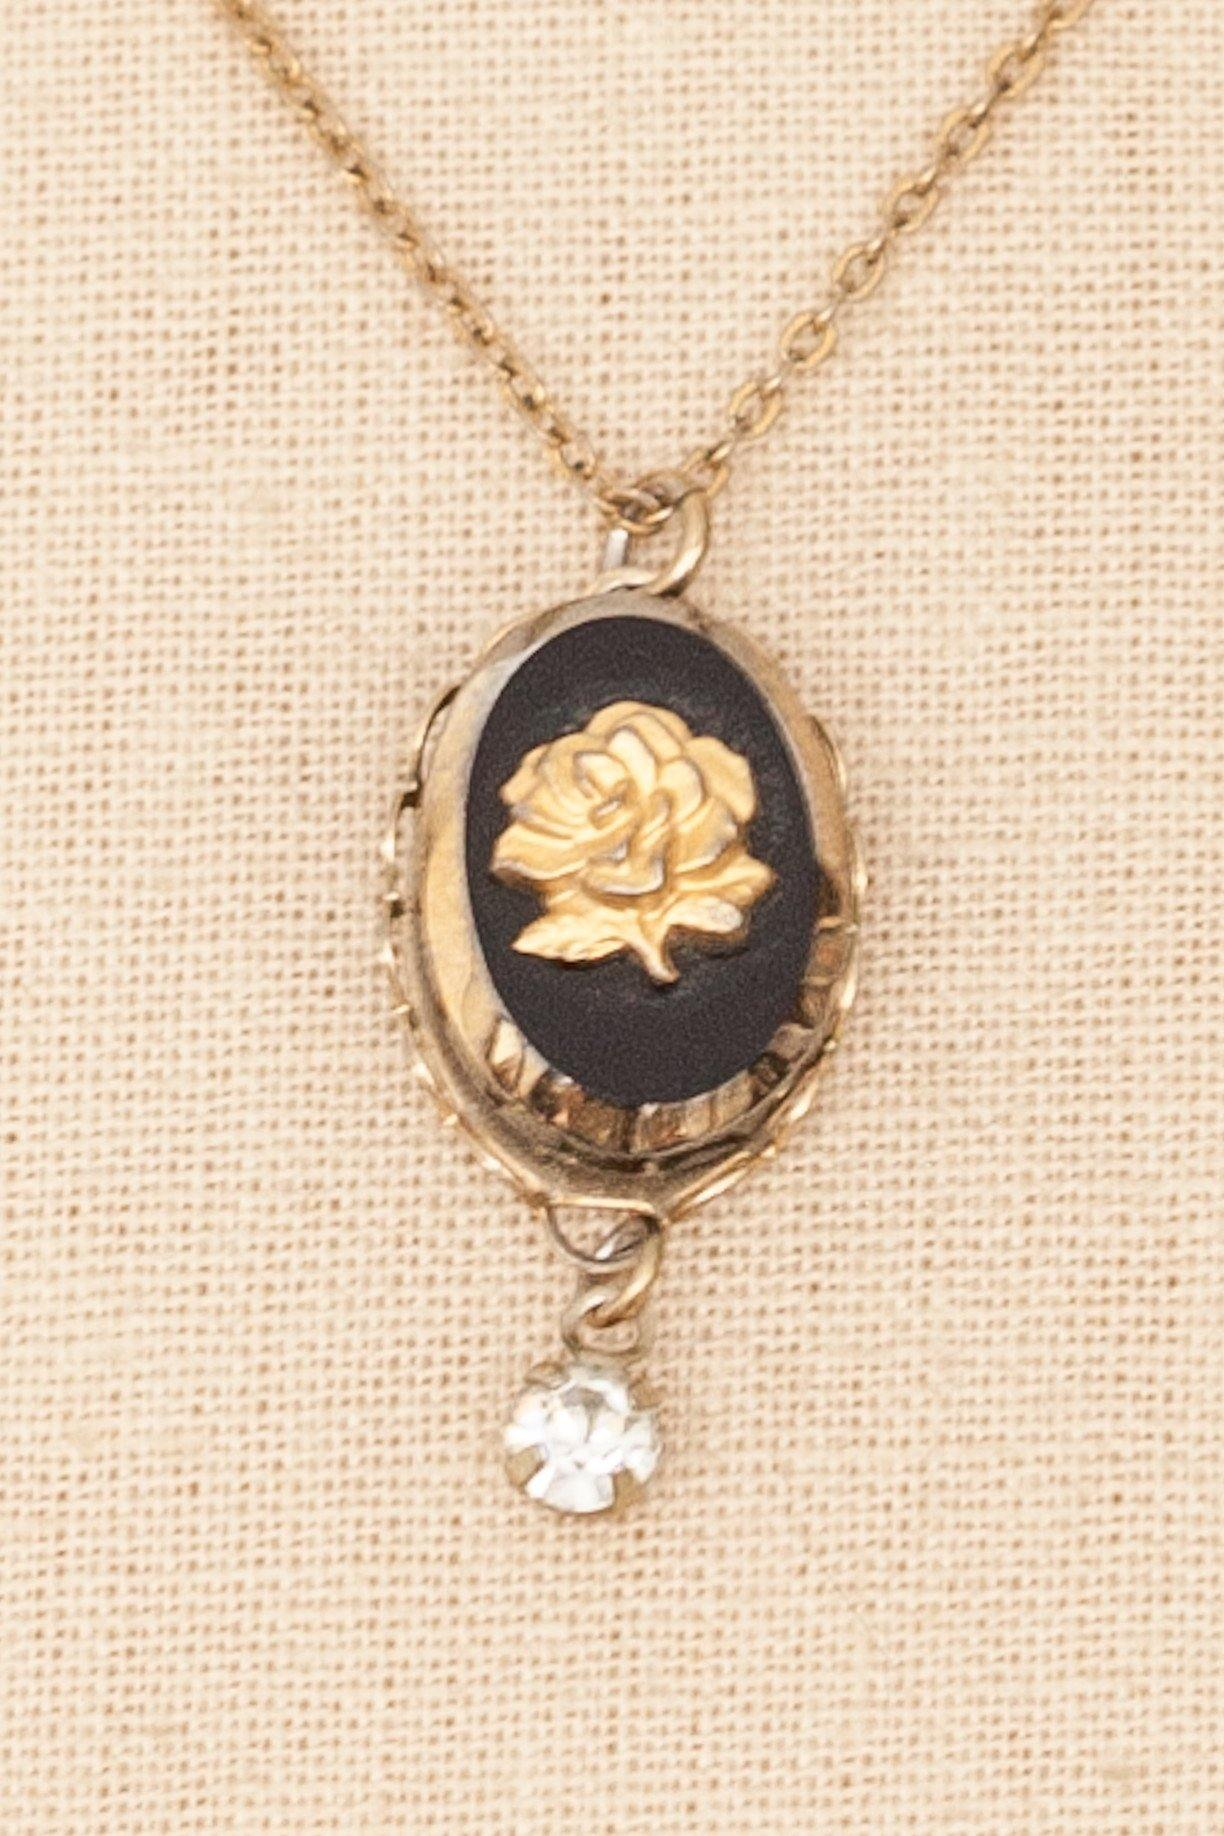 50's__Vintage__Floral Pendant Necklace